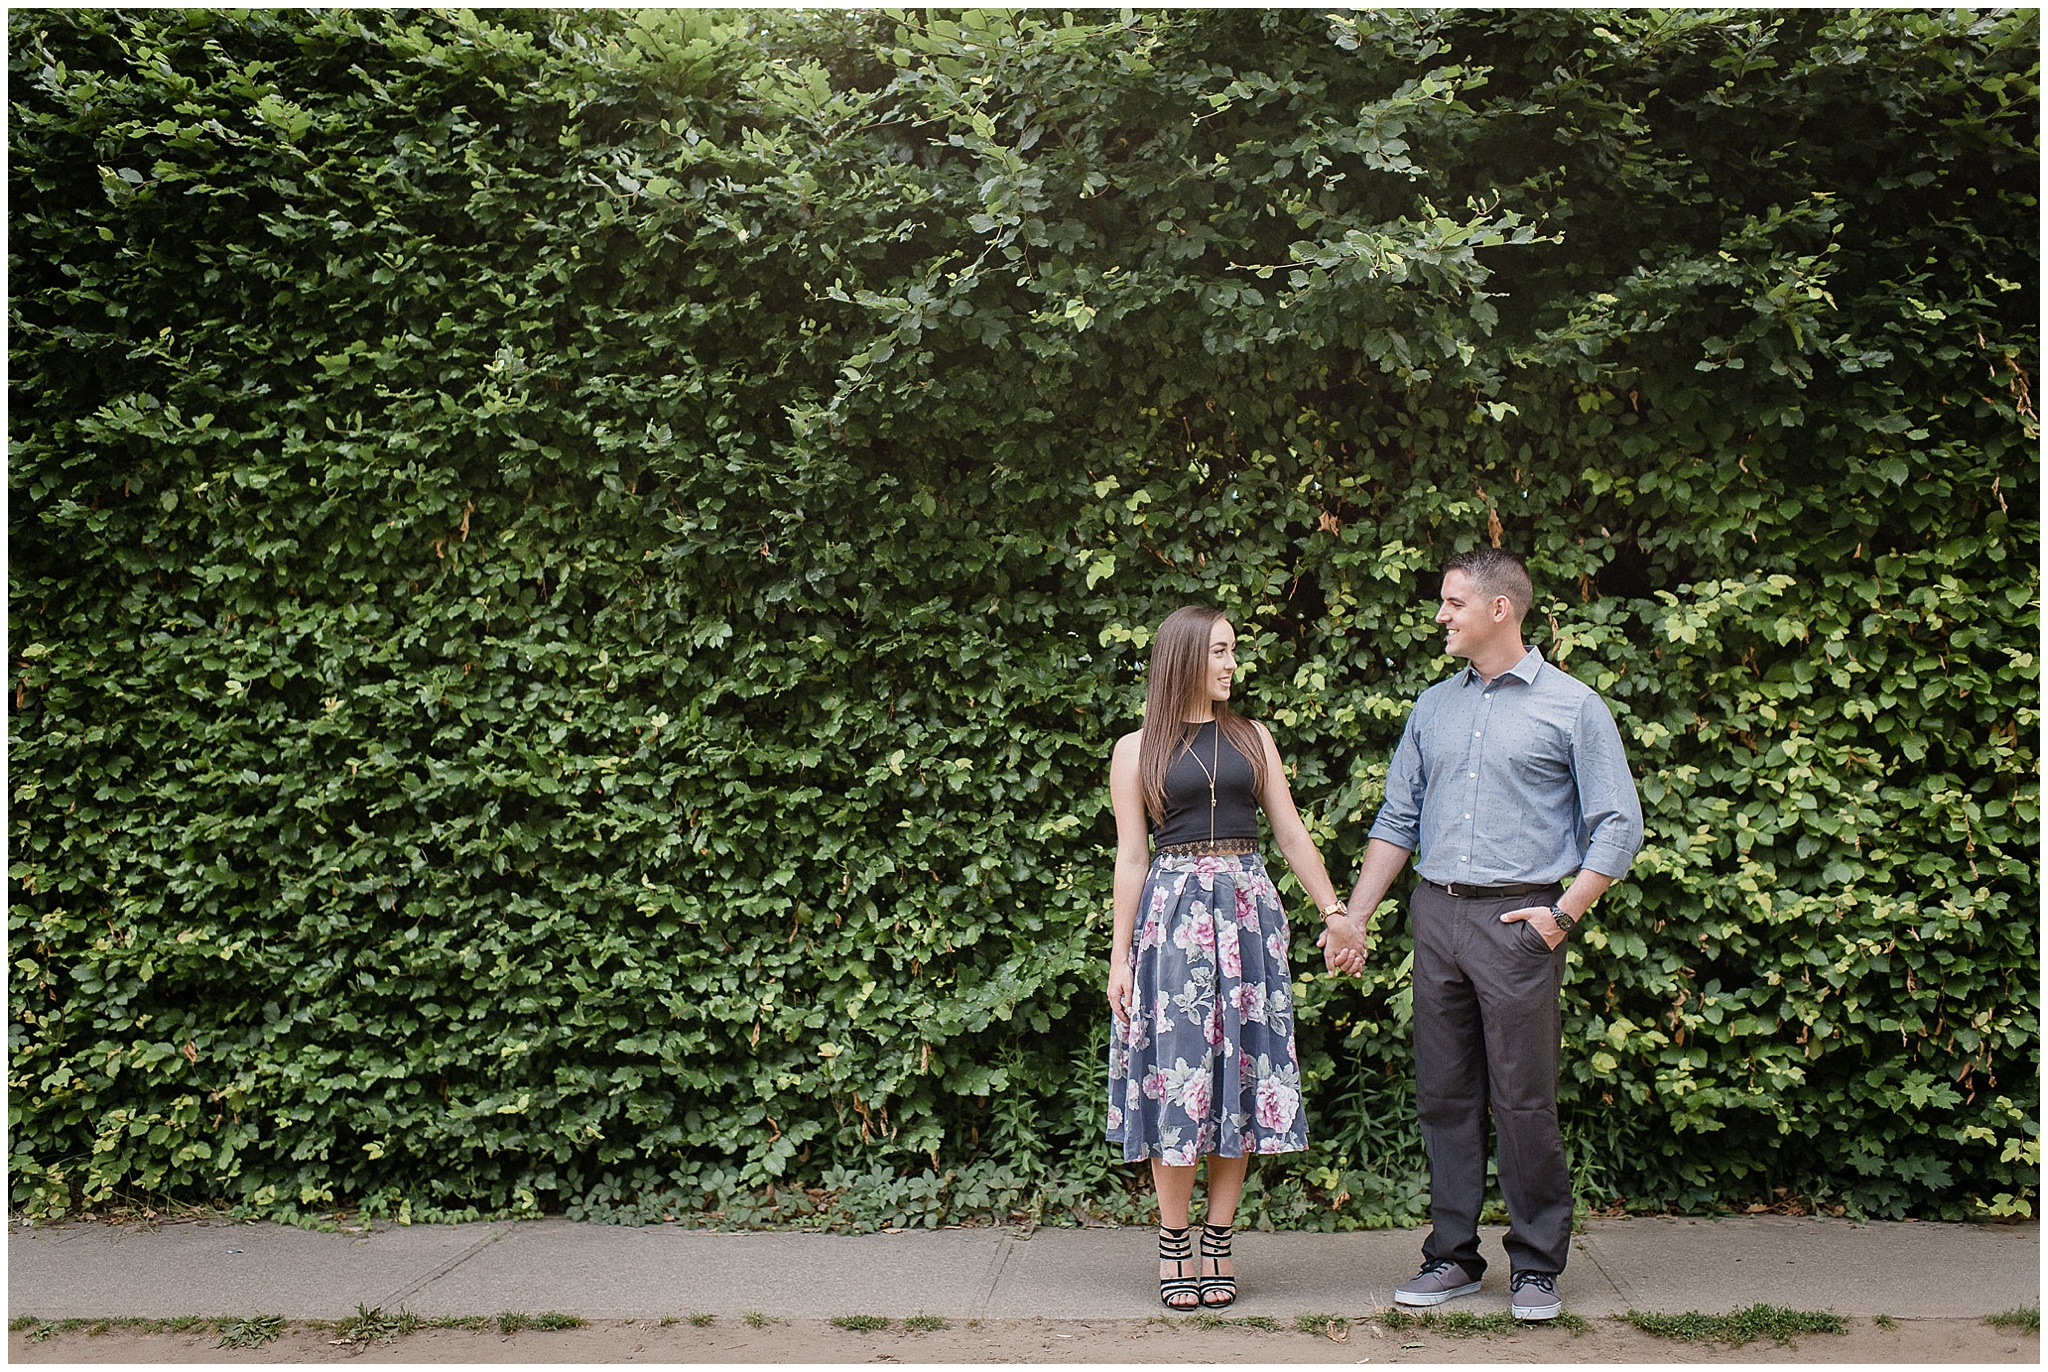 Niagara on the Lake engagement session by Jenn Kavanagh Photography